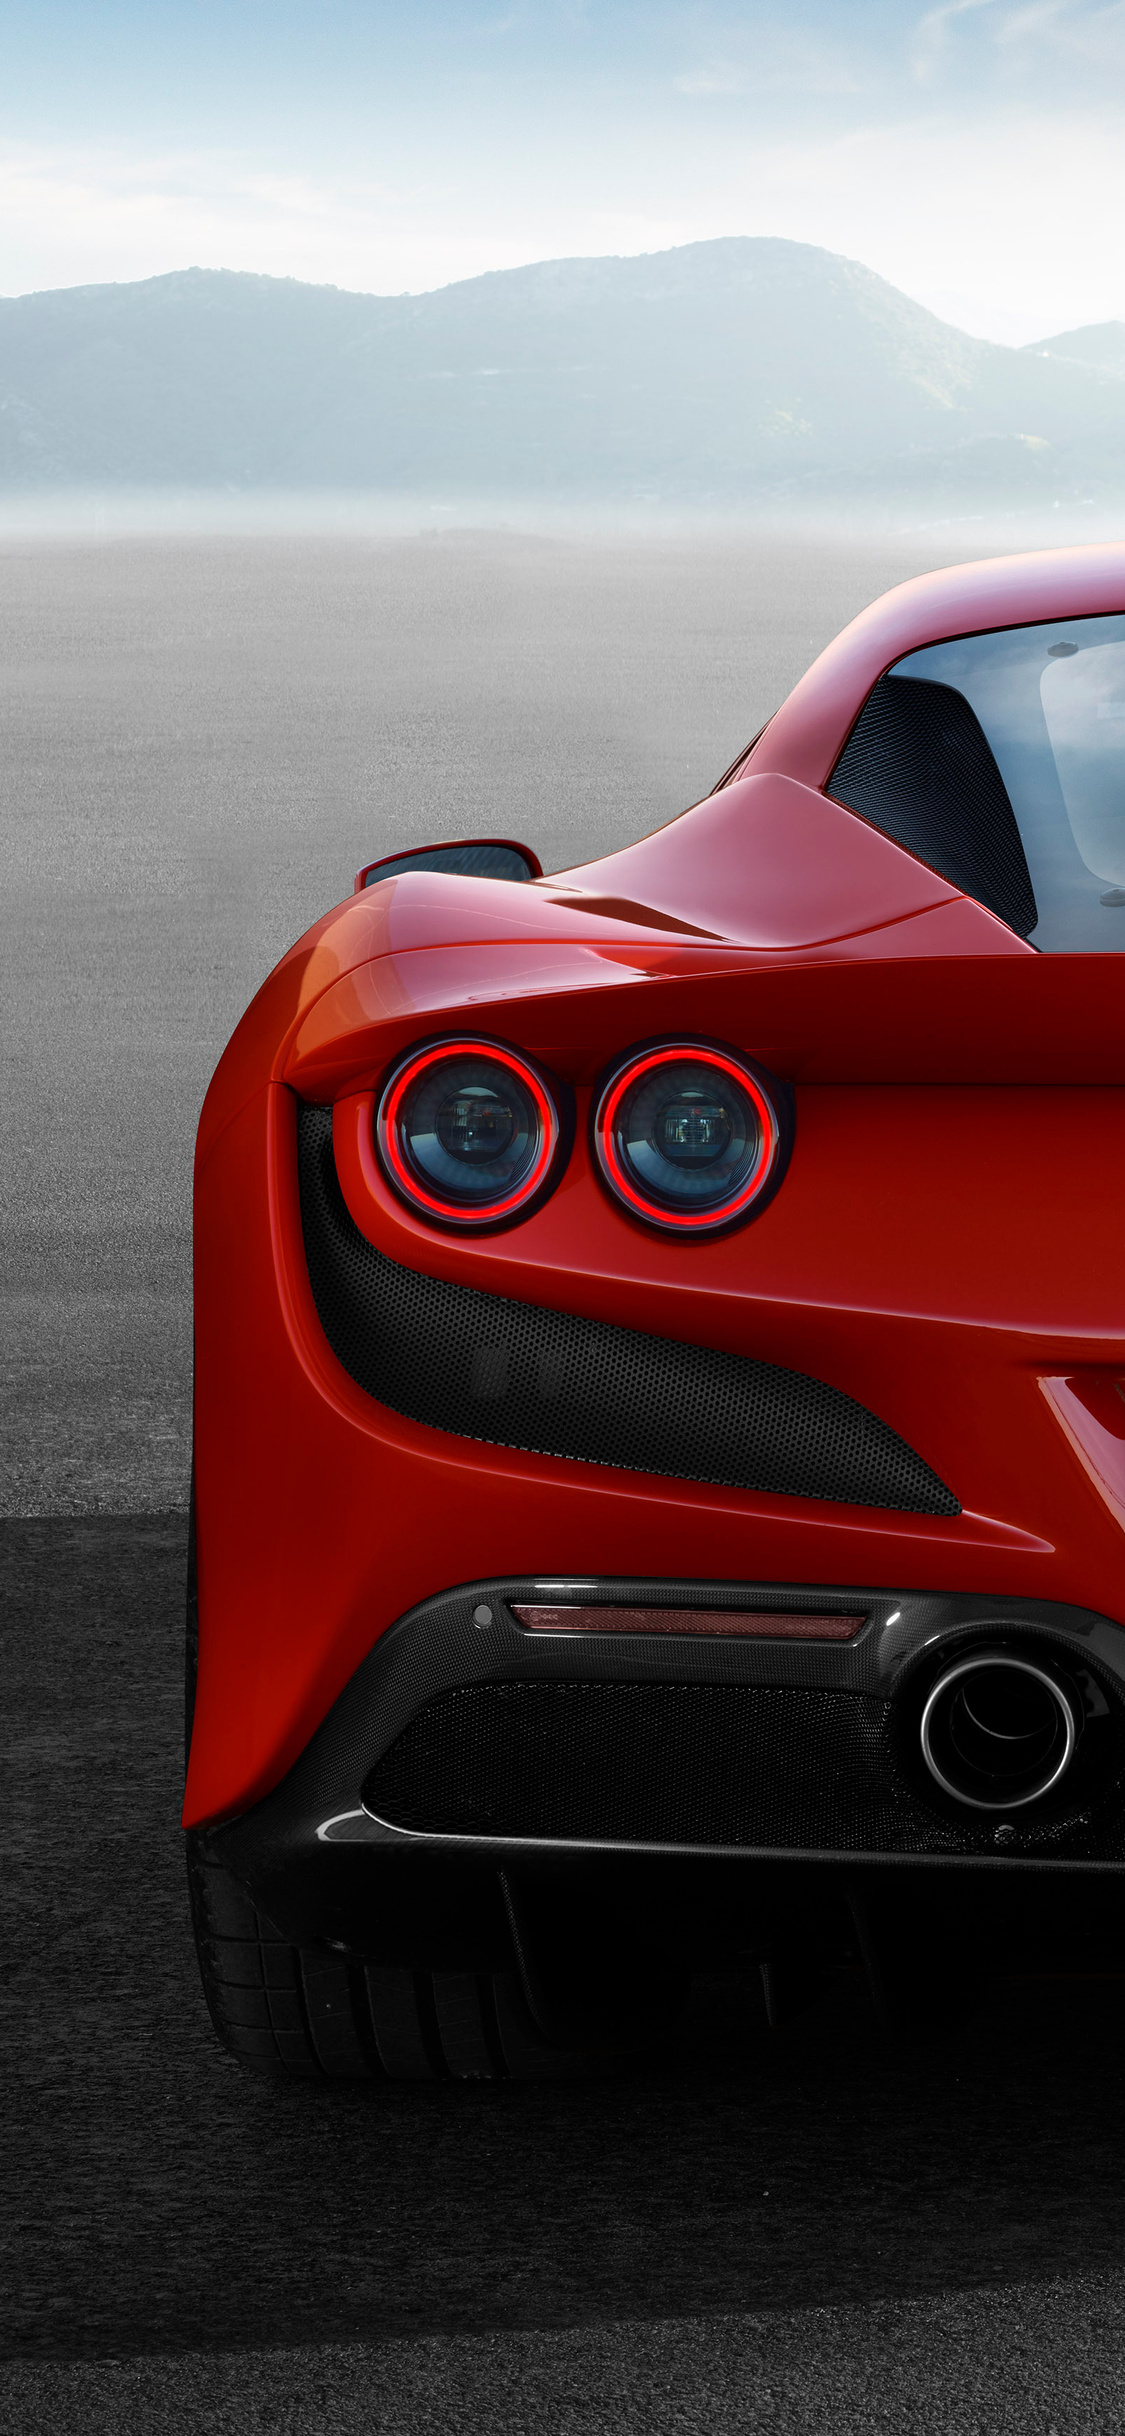 1125x2436 Ferrari F8 Tributo 2019 Rear Iphone XS,Iphone 10